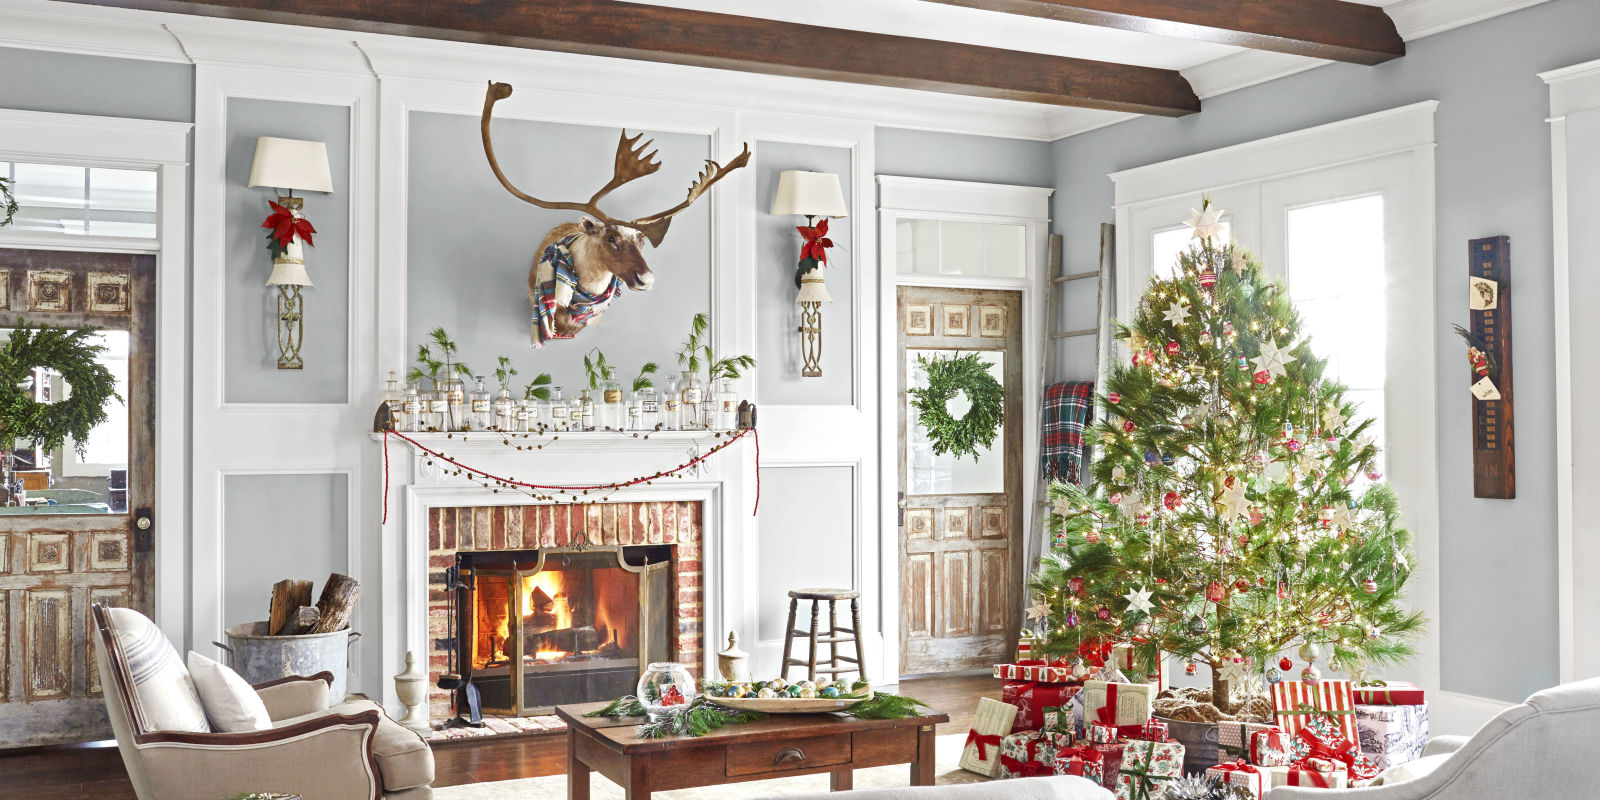 Christmas Interior Design Classy Christmas Interior Design Cheerful Christmas Interior Designs